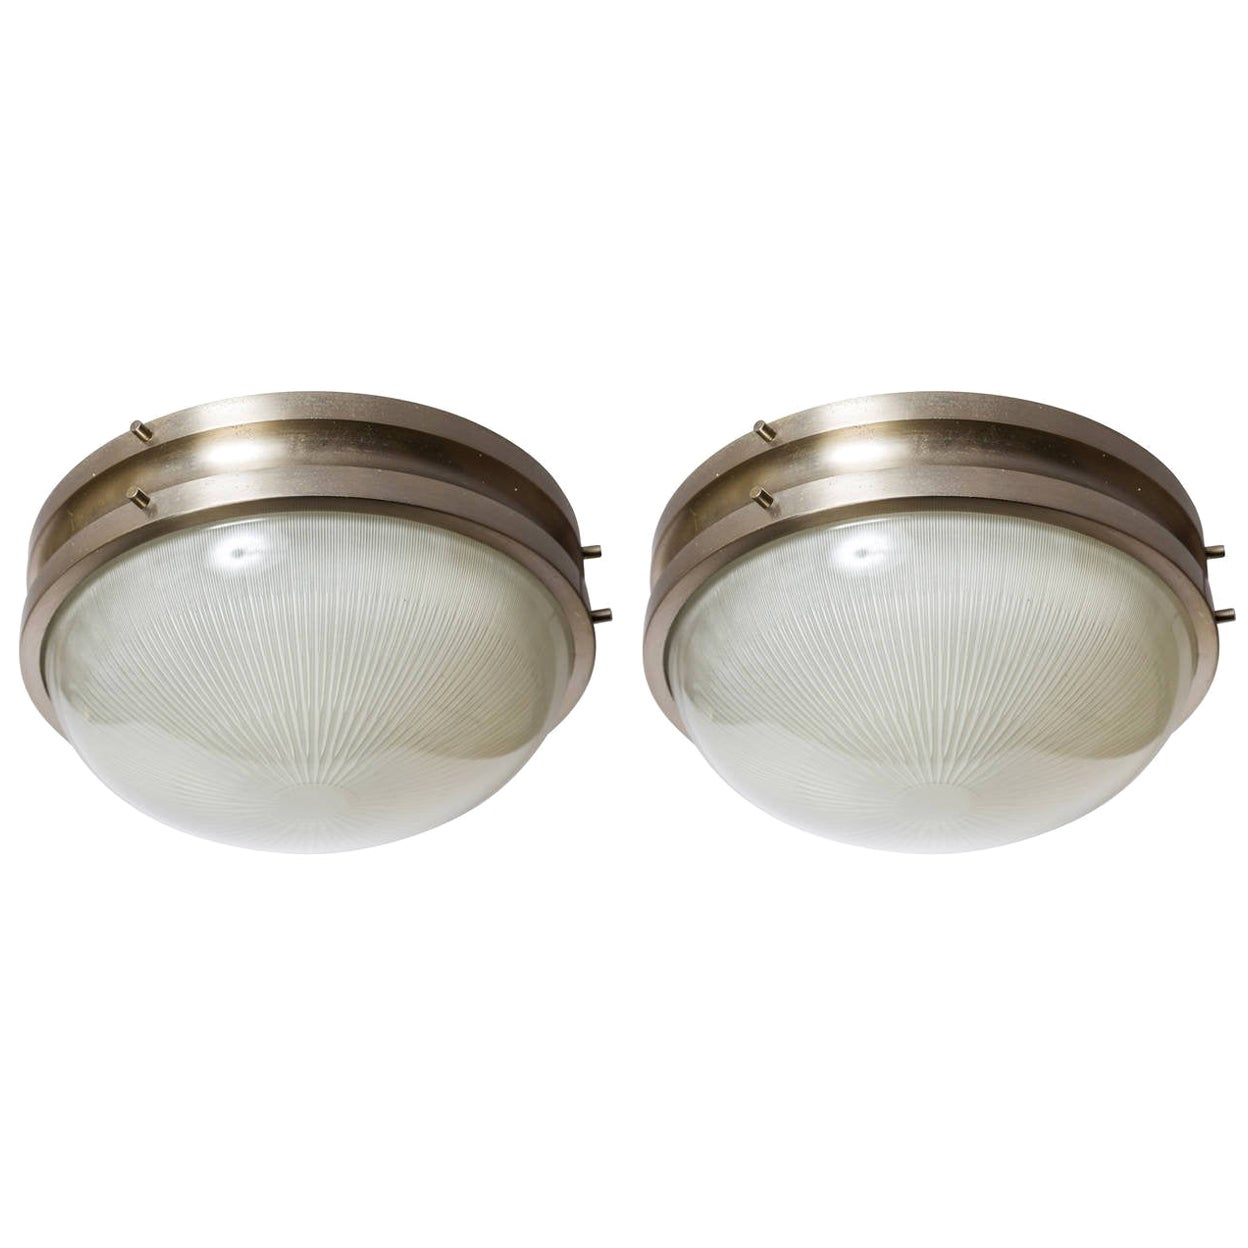 1960s Sergio Mazza 'Sigma' Wall or Ceiling Lights for Artemide, 1960s